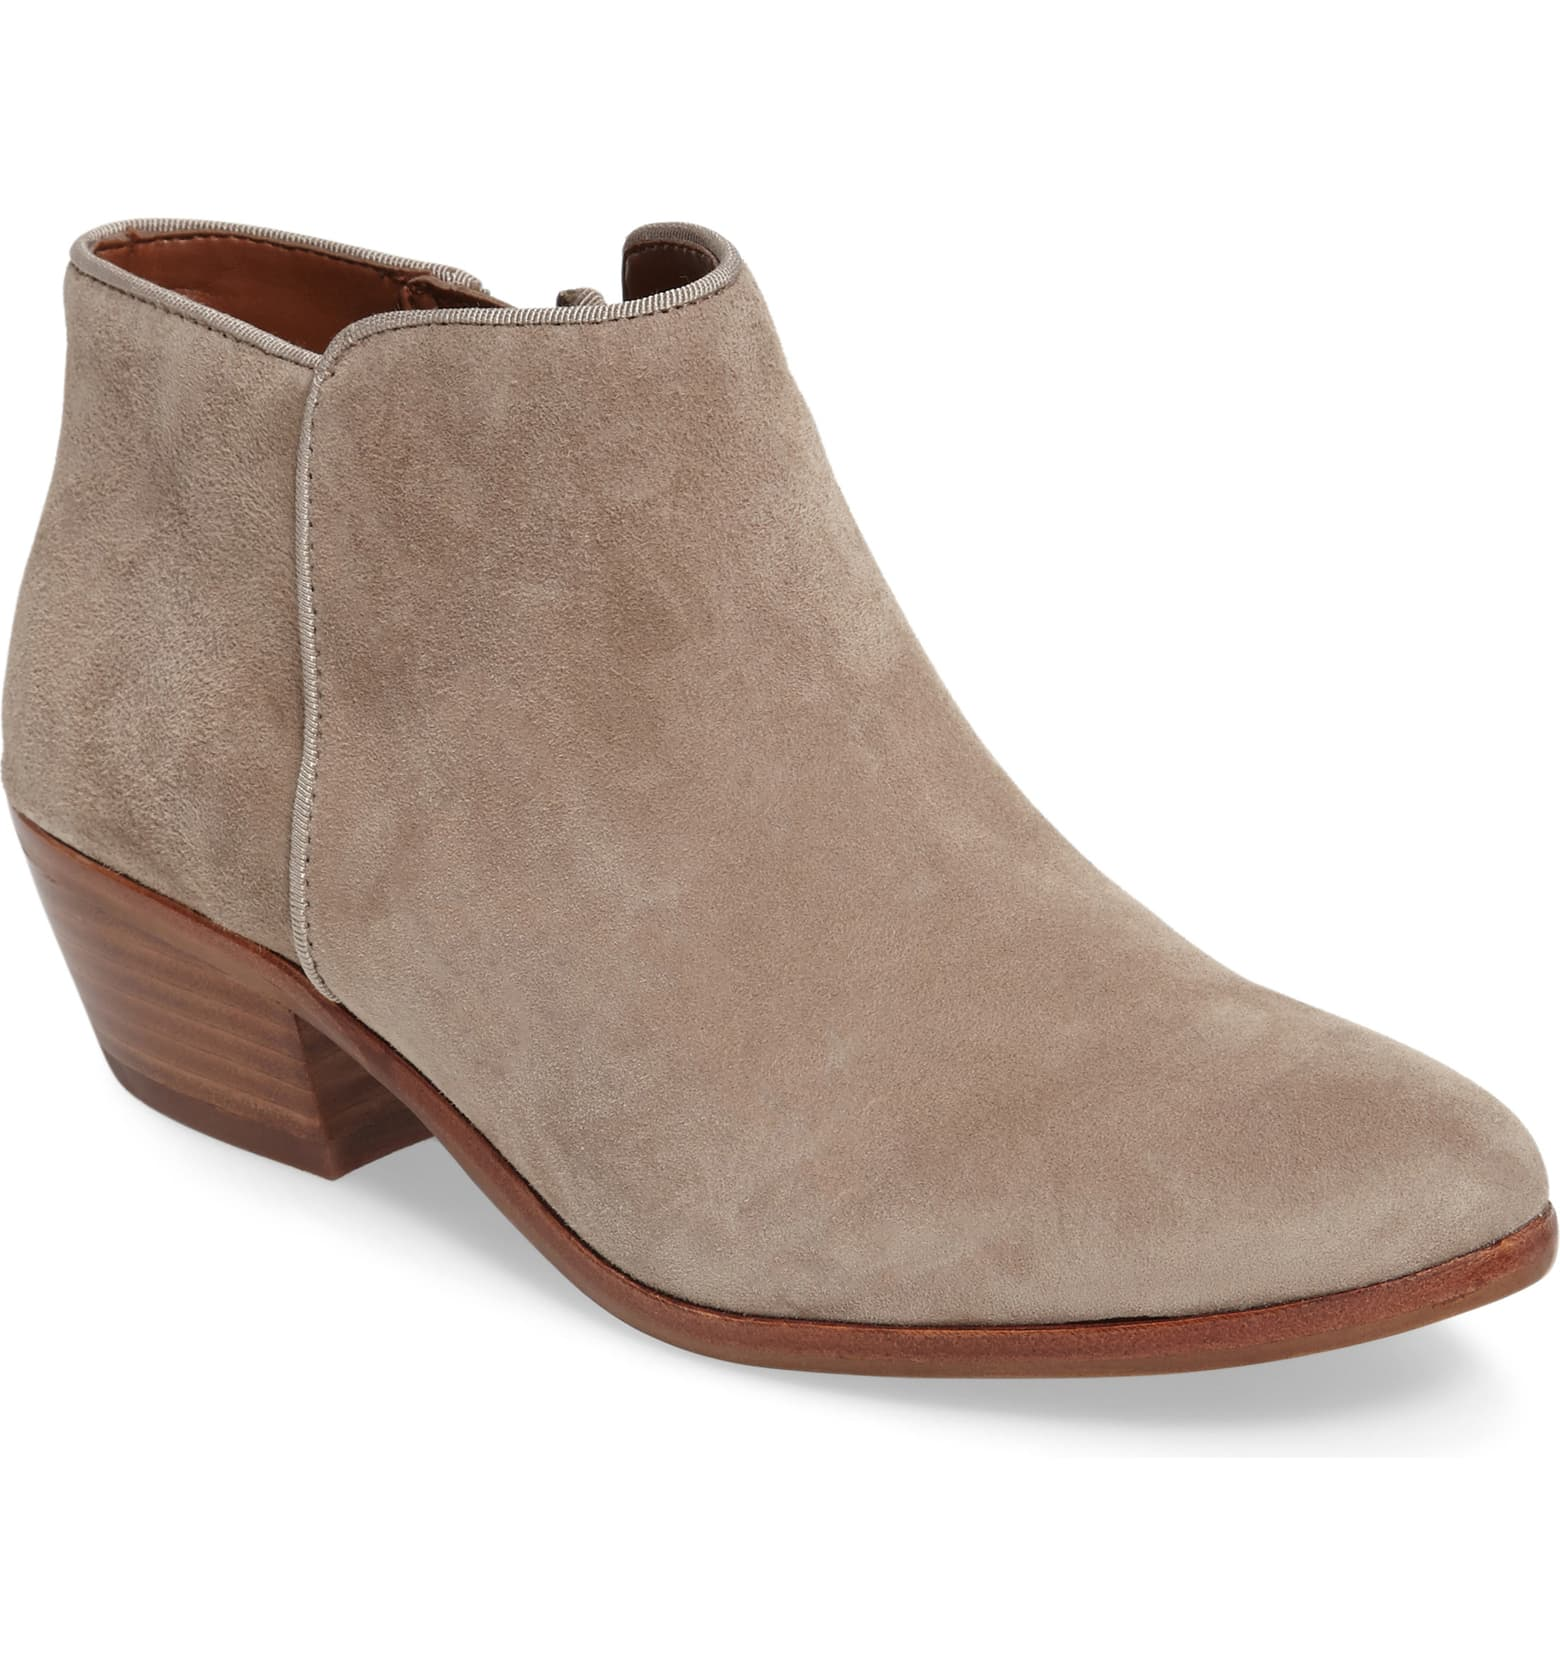 Check out these popular Fall boots for 2019 that are the Chelsea style! From Sam Edelman, Universal Threads, and more!